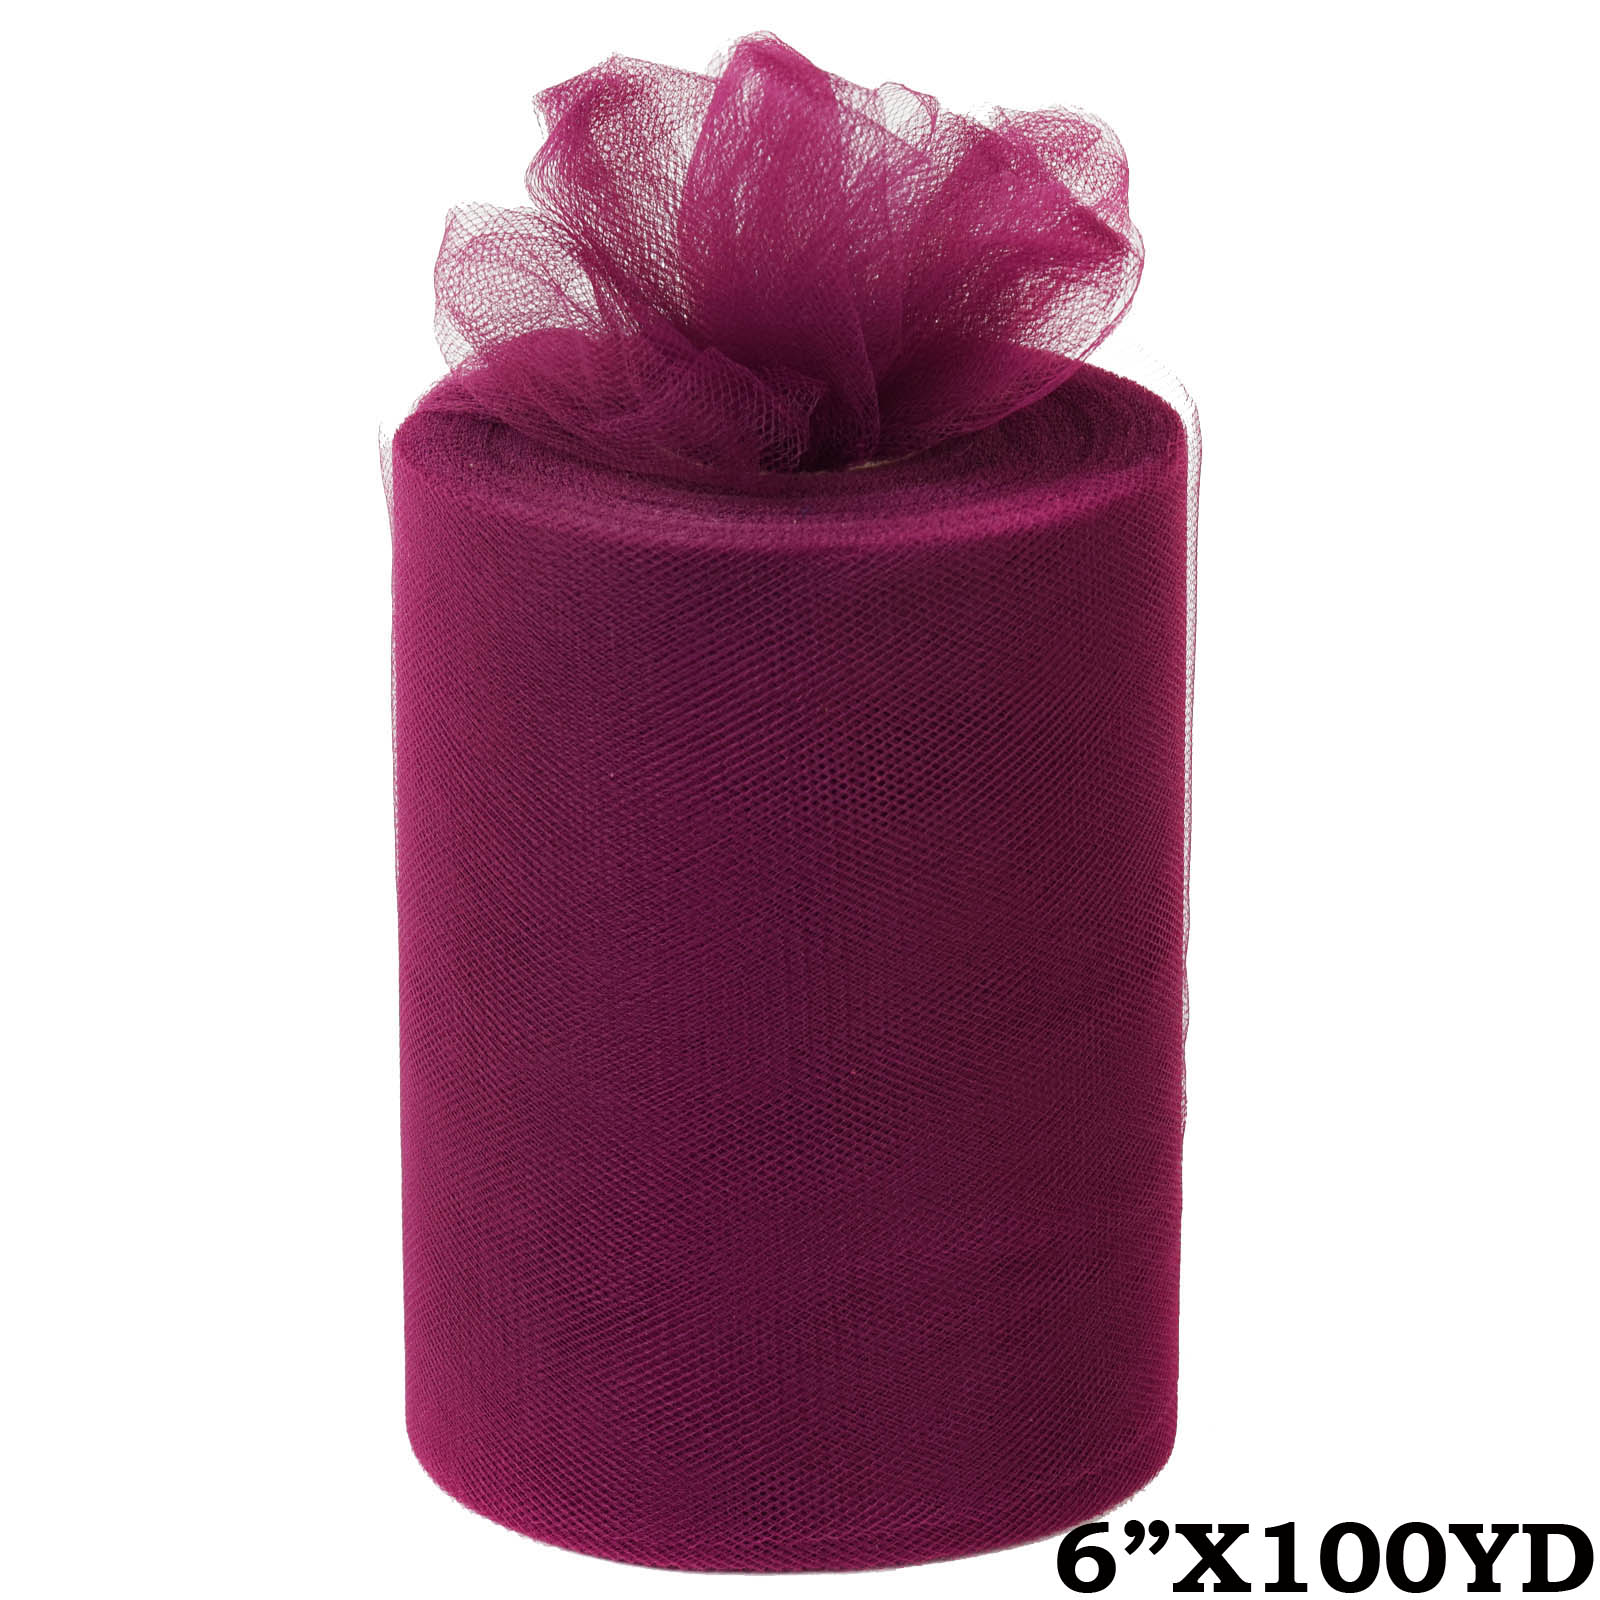 "6"" x 300 feet Wedding Tulle Roll For Crafting Favors Decor - Eggplant Purple"